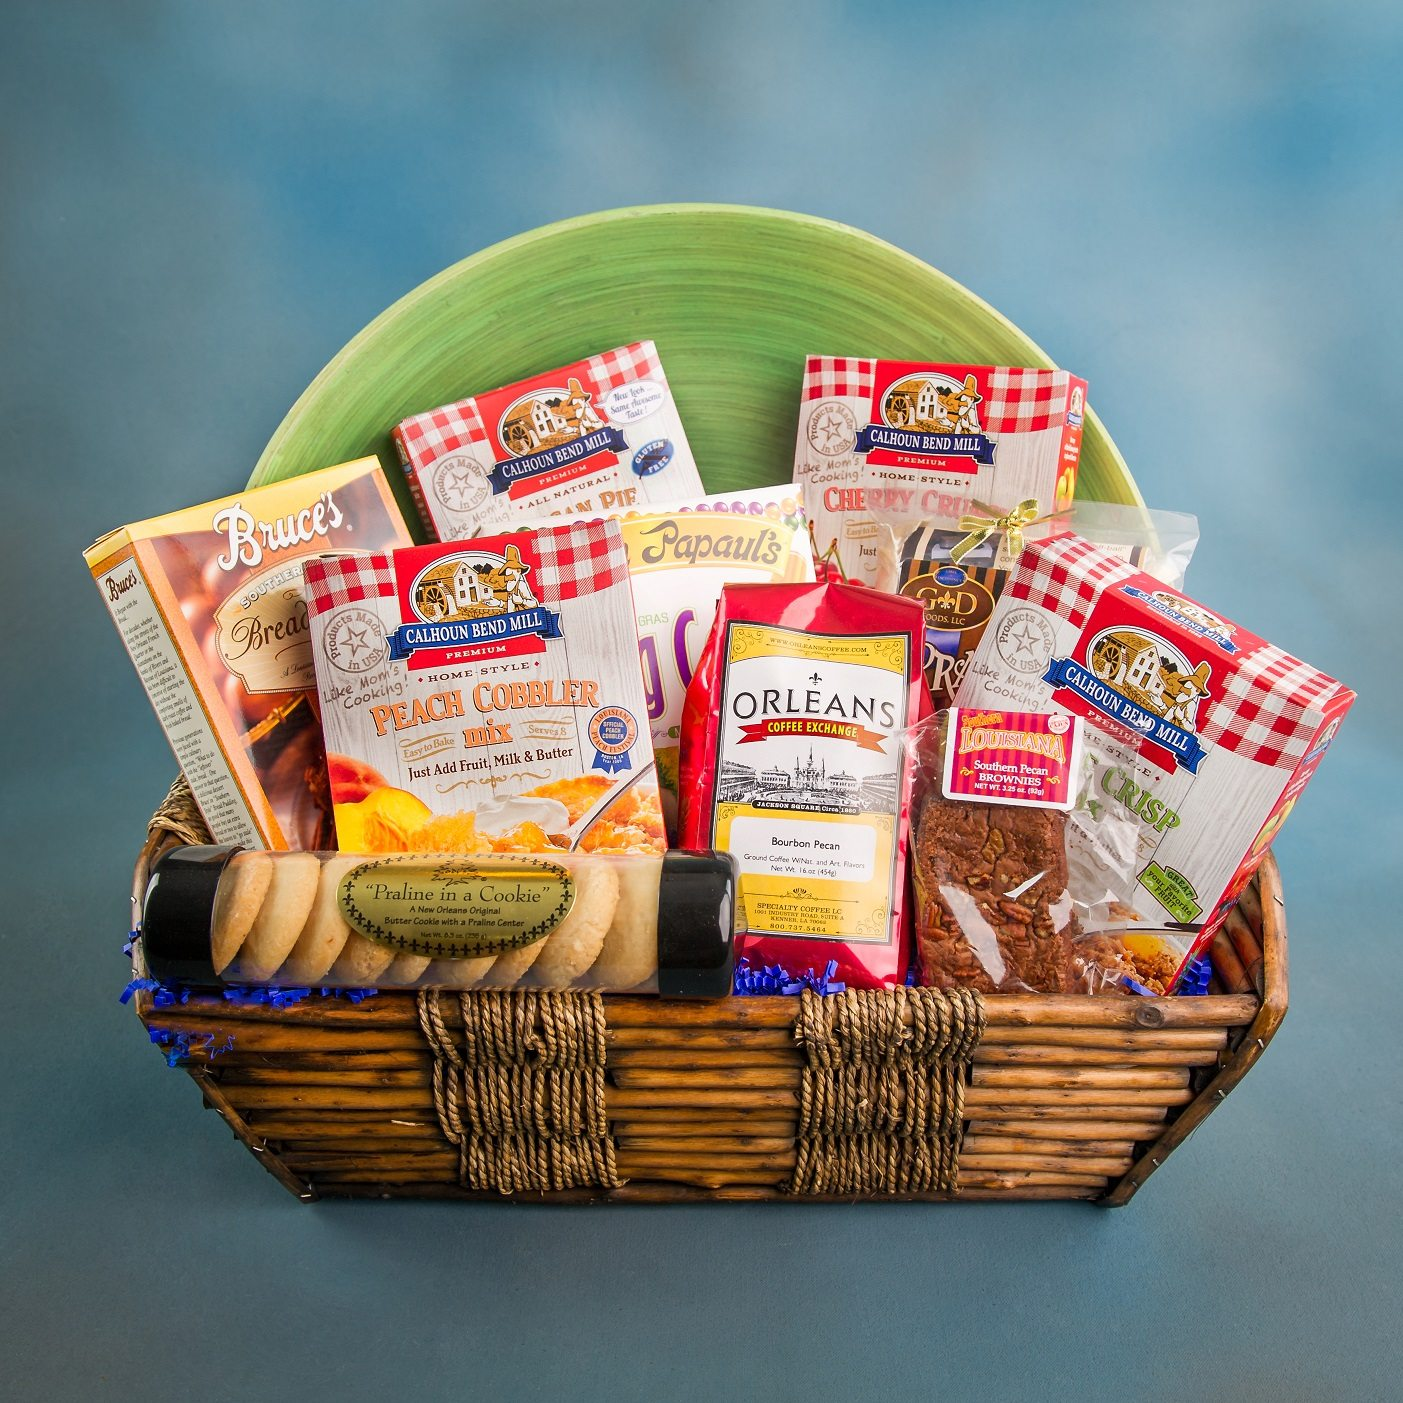 Louisiana Desserts Cajun Gift Baskets New Orleans Gift